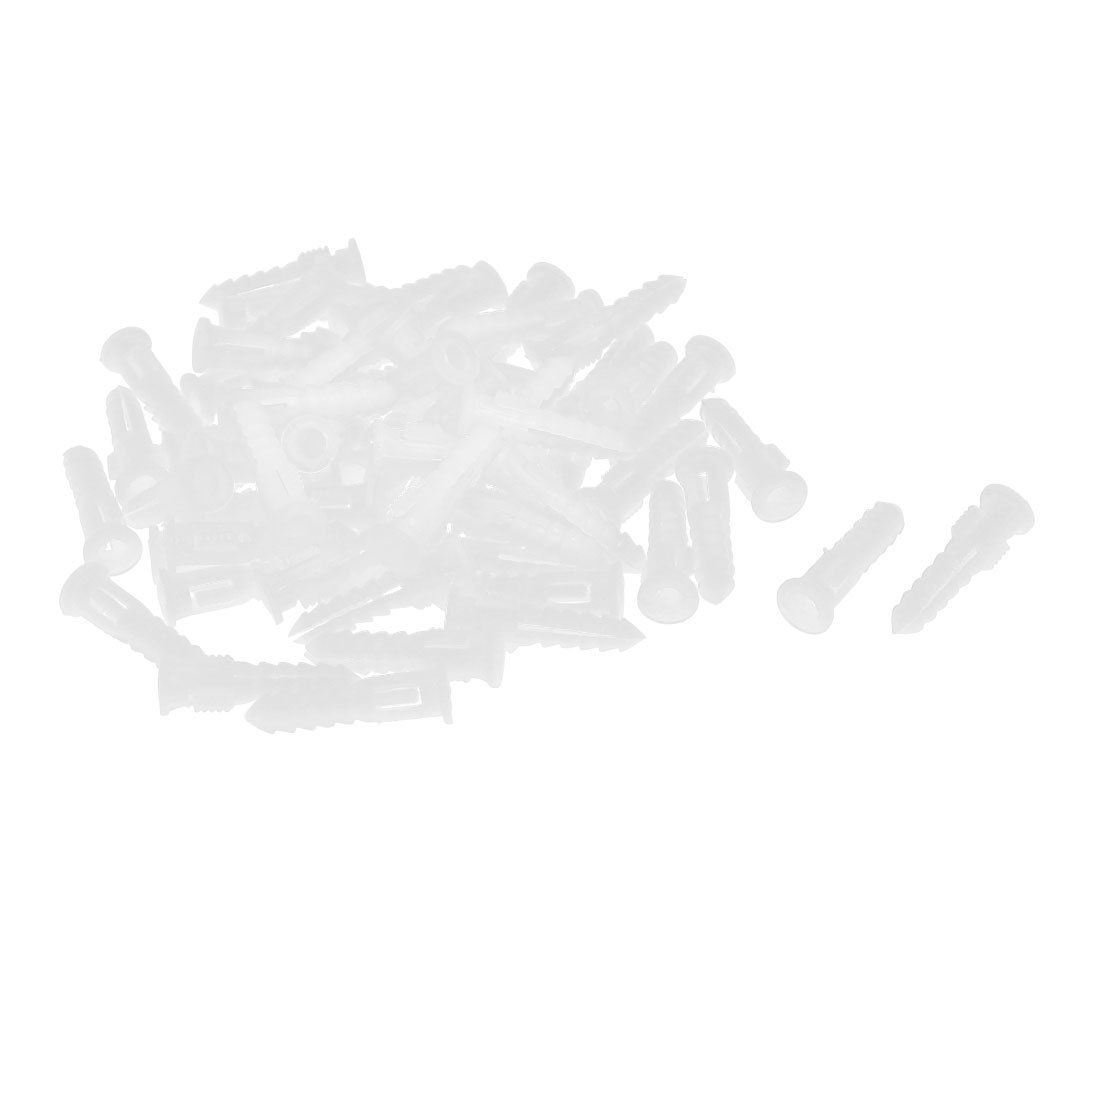 uxcell 30mm Length Plastic Expansion Bolt Wall Drywall Anchor White 60pcs